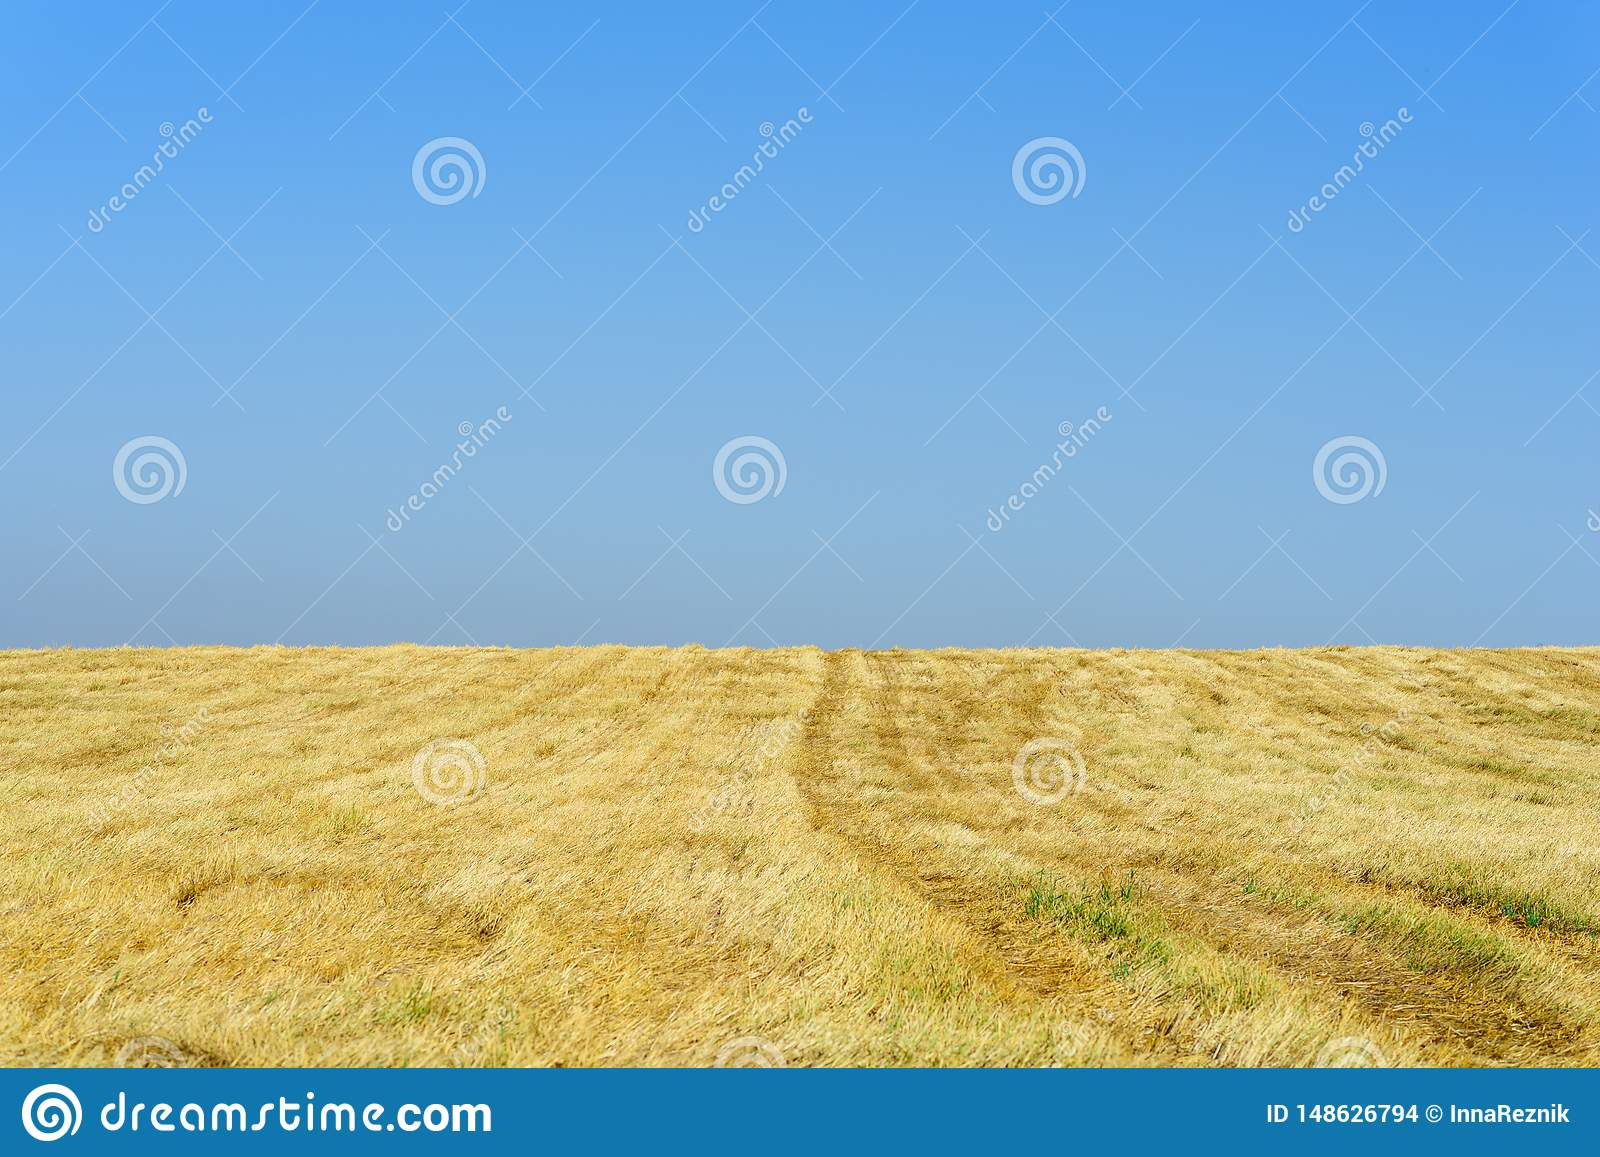 Gold wheat fields after harvest and blue sky in sunny day.